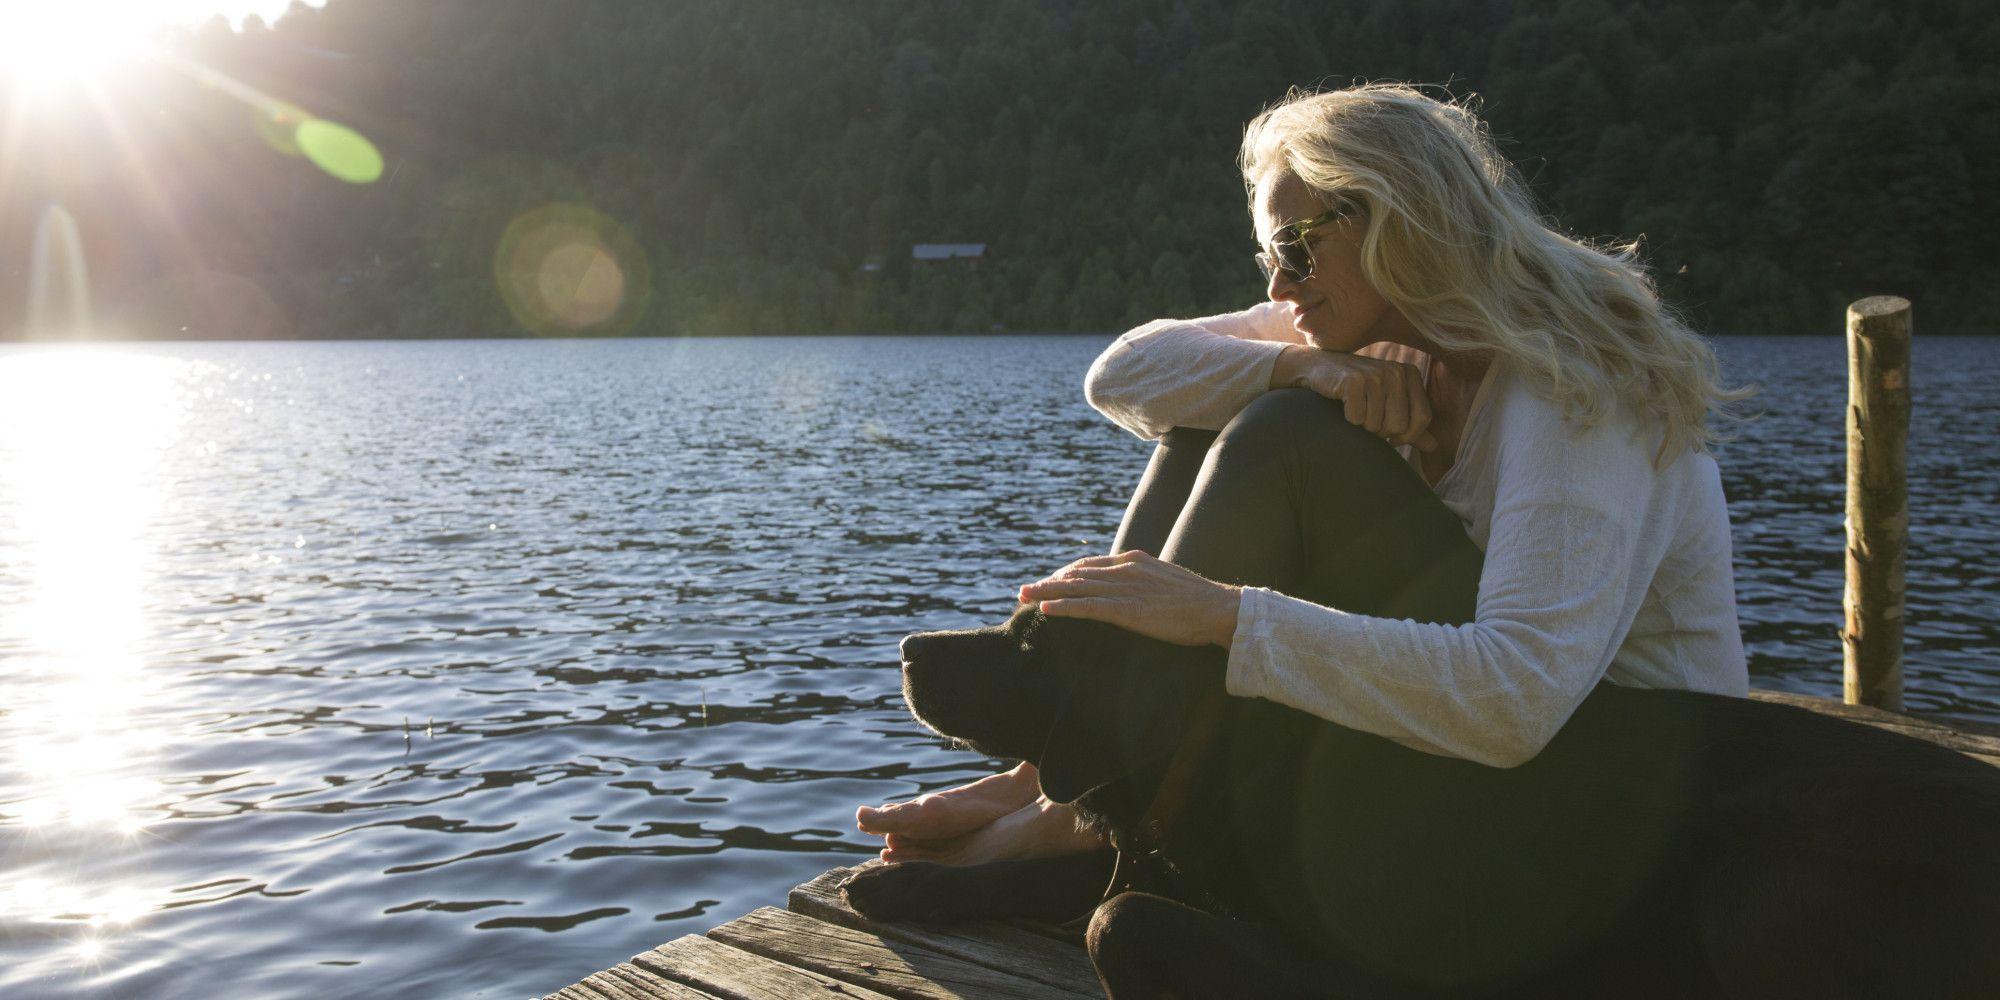 when setting aside time to do something for ourselves whether its exercise, meditation or just happy hour feel good about it! its important to take care of yourself without feeling guilty!